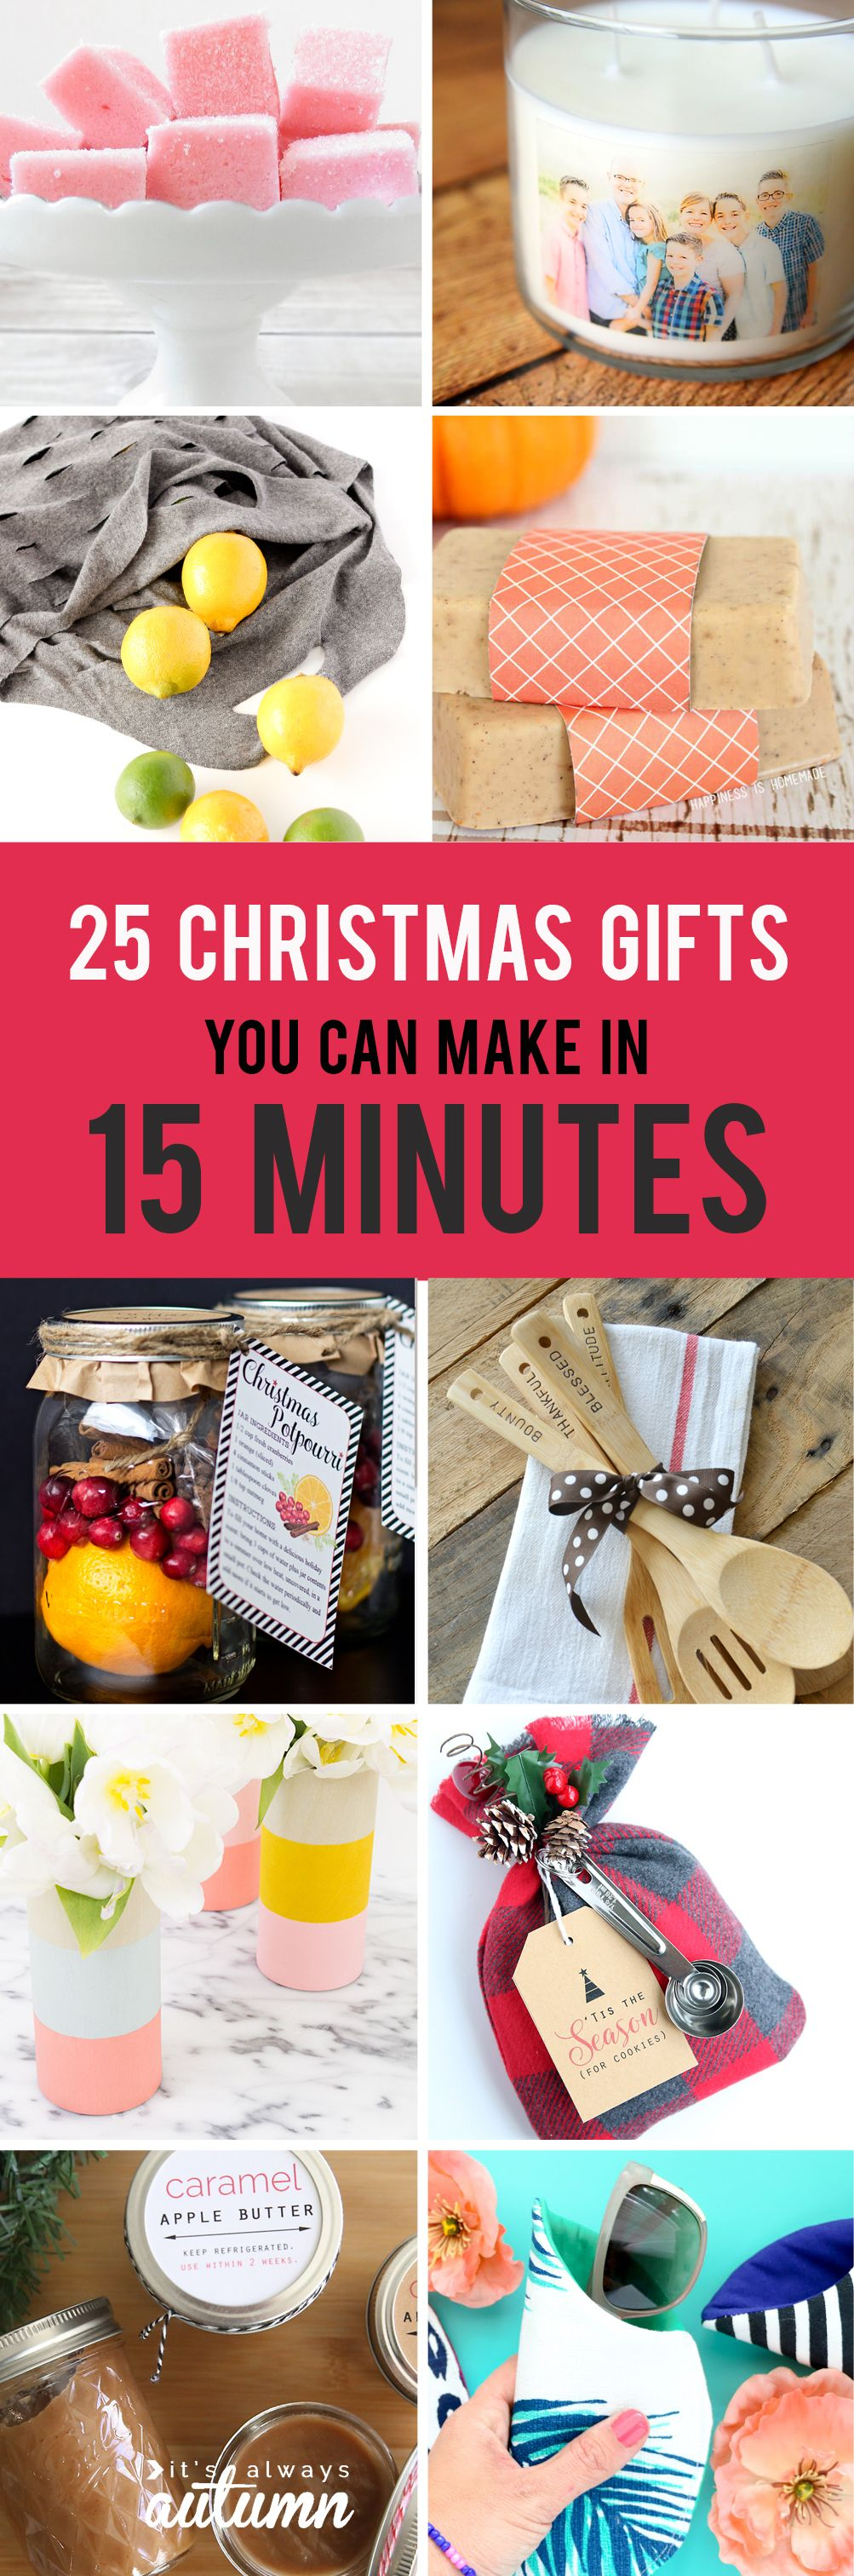 25 easy homemade christmas gifts you can make in 15 minutes diy 25 gorgeous diy christmas gifts you can make in 15 minutes quick and easy homemade solutioingenieria Image collections